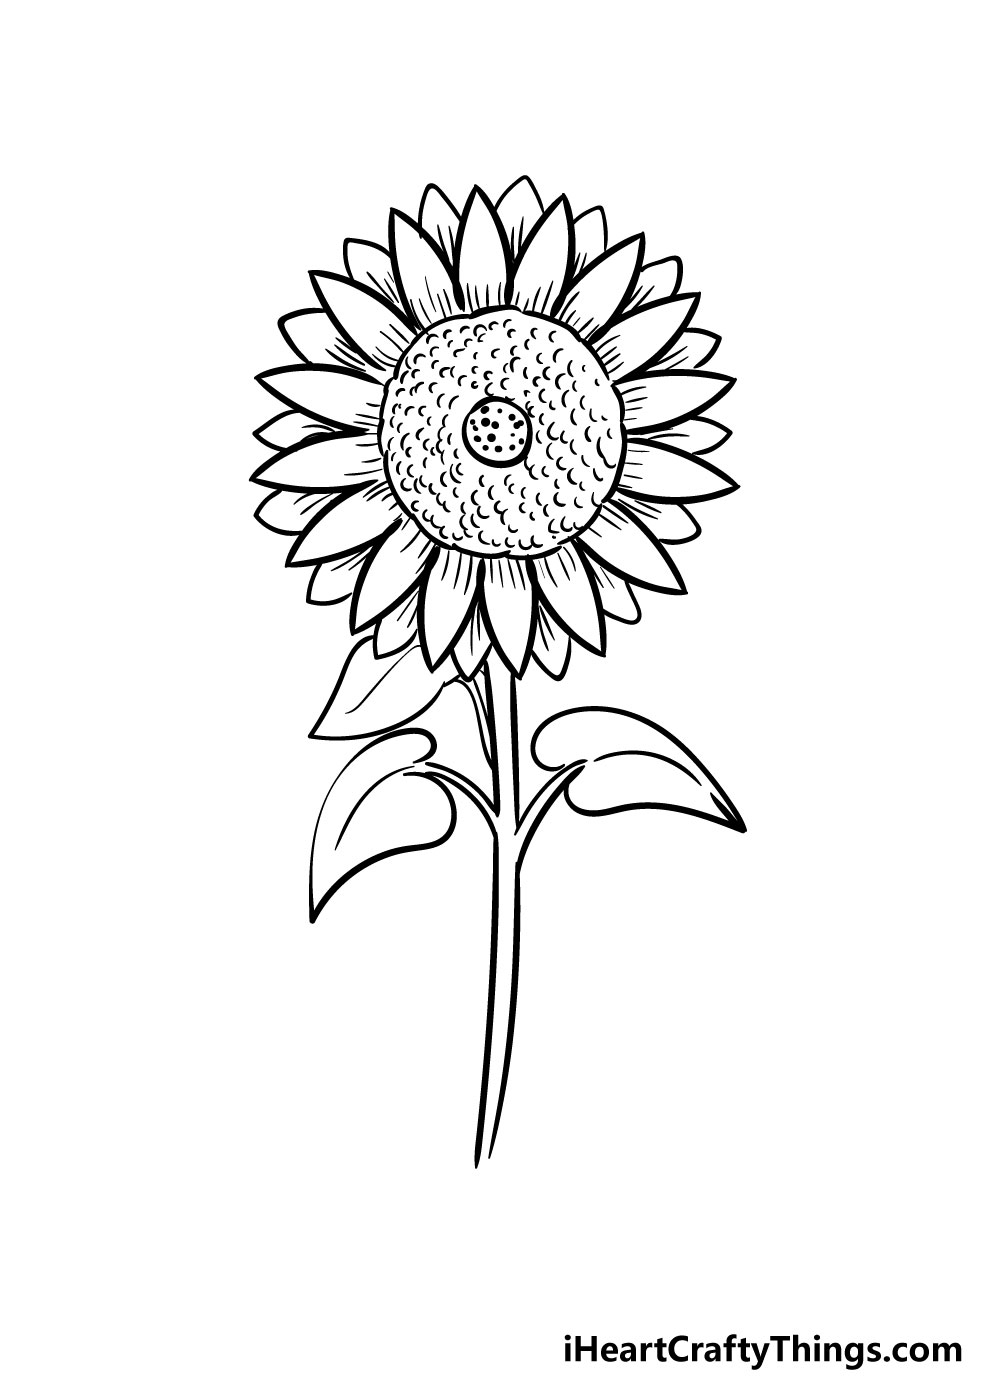 sunflower coloring step 9